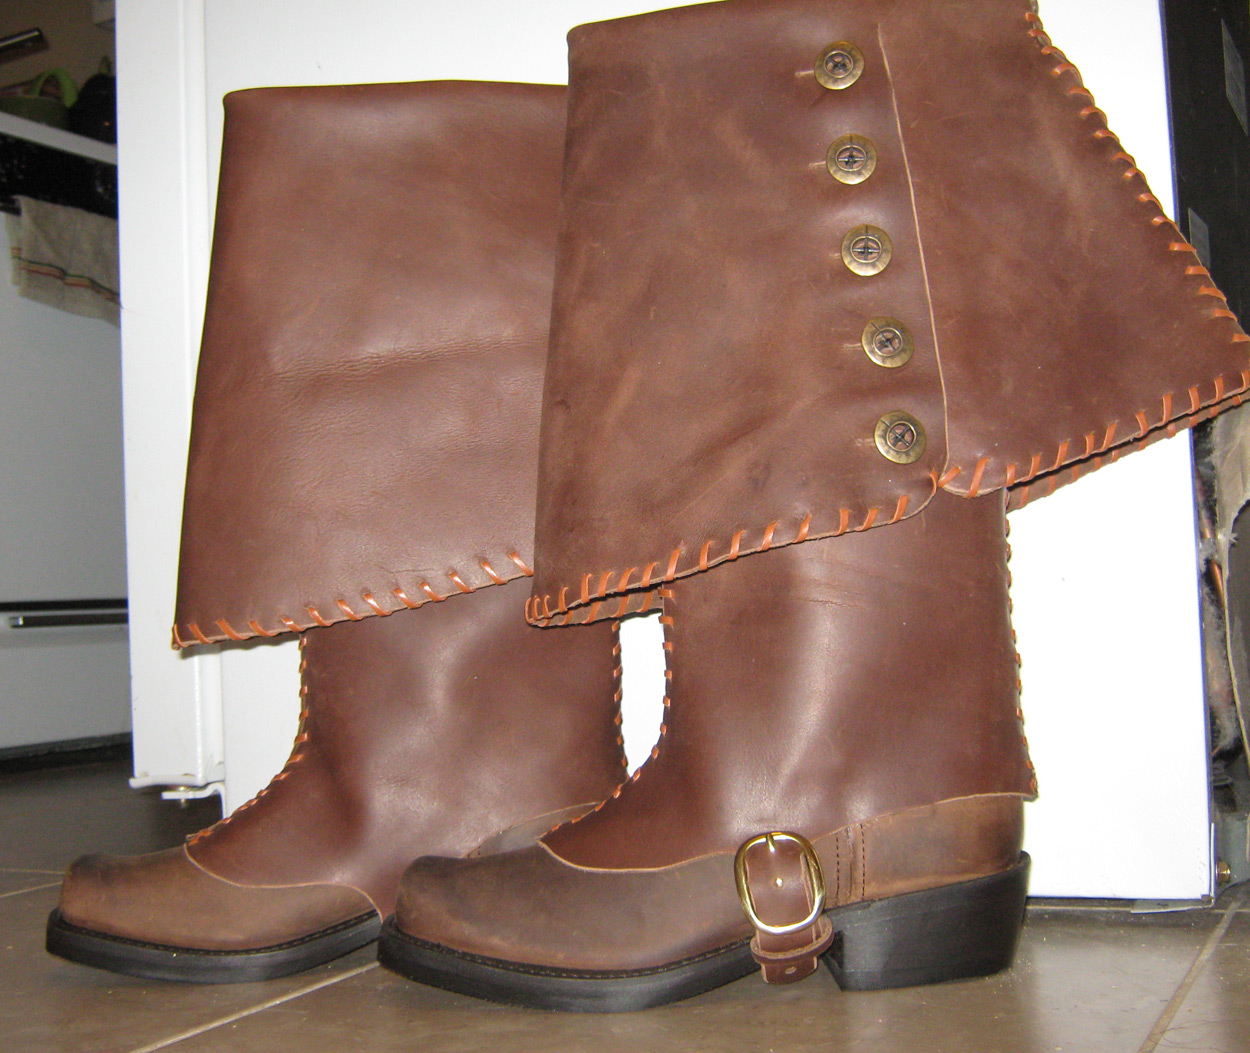 custom-pirate-boots-leather-stitching-009.jpg